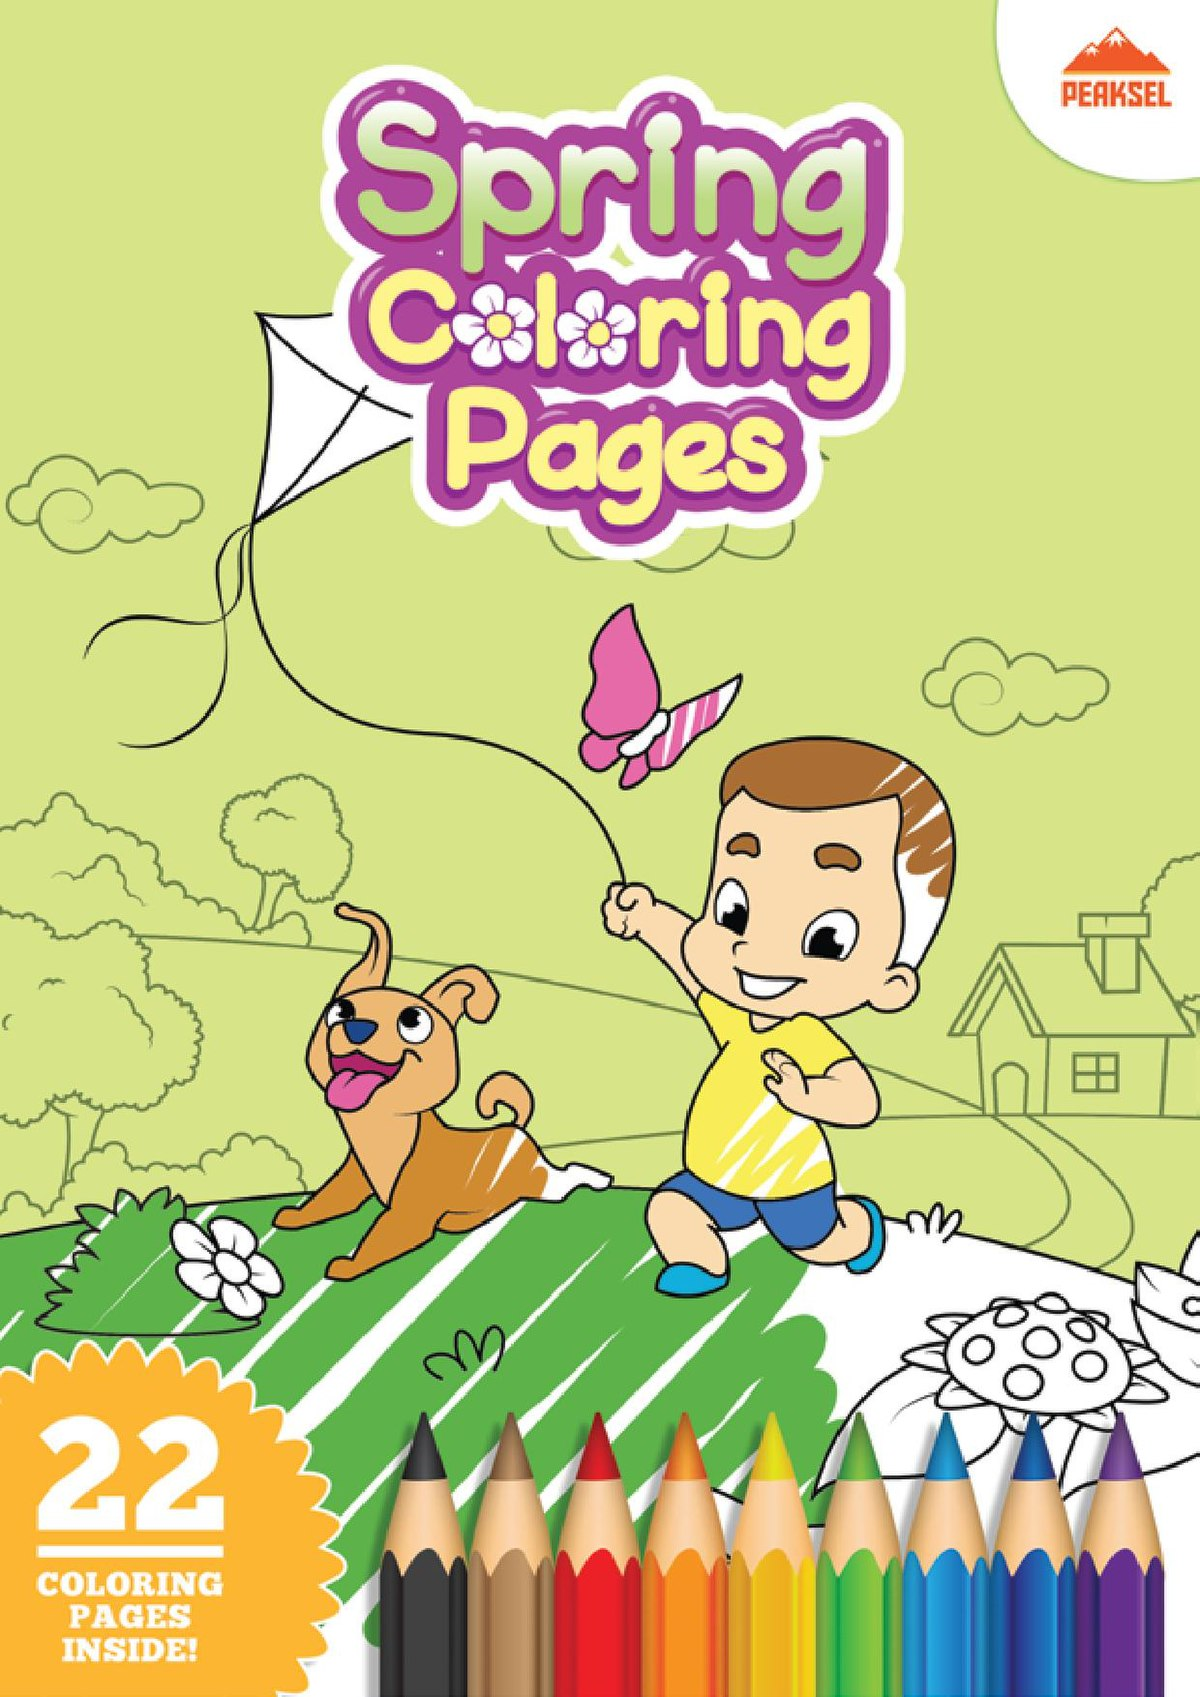 Filespring coloring pages printable coloring book, love coloring pages printable